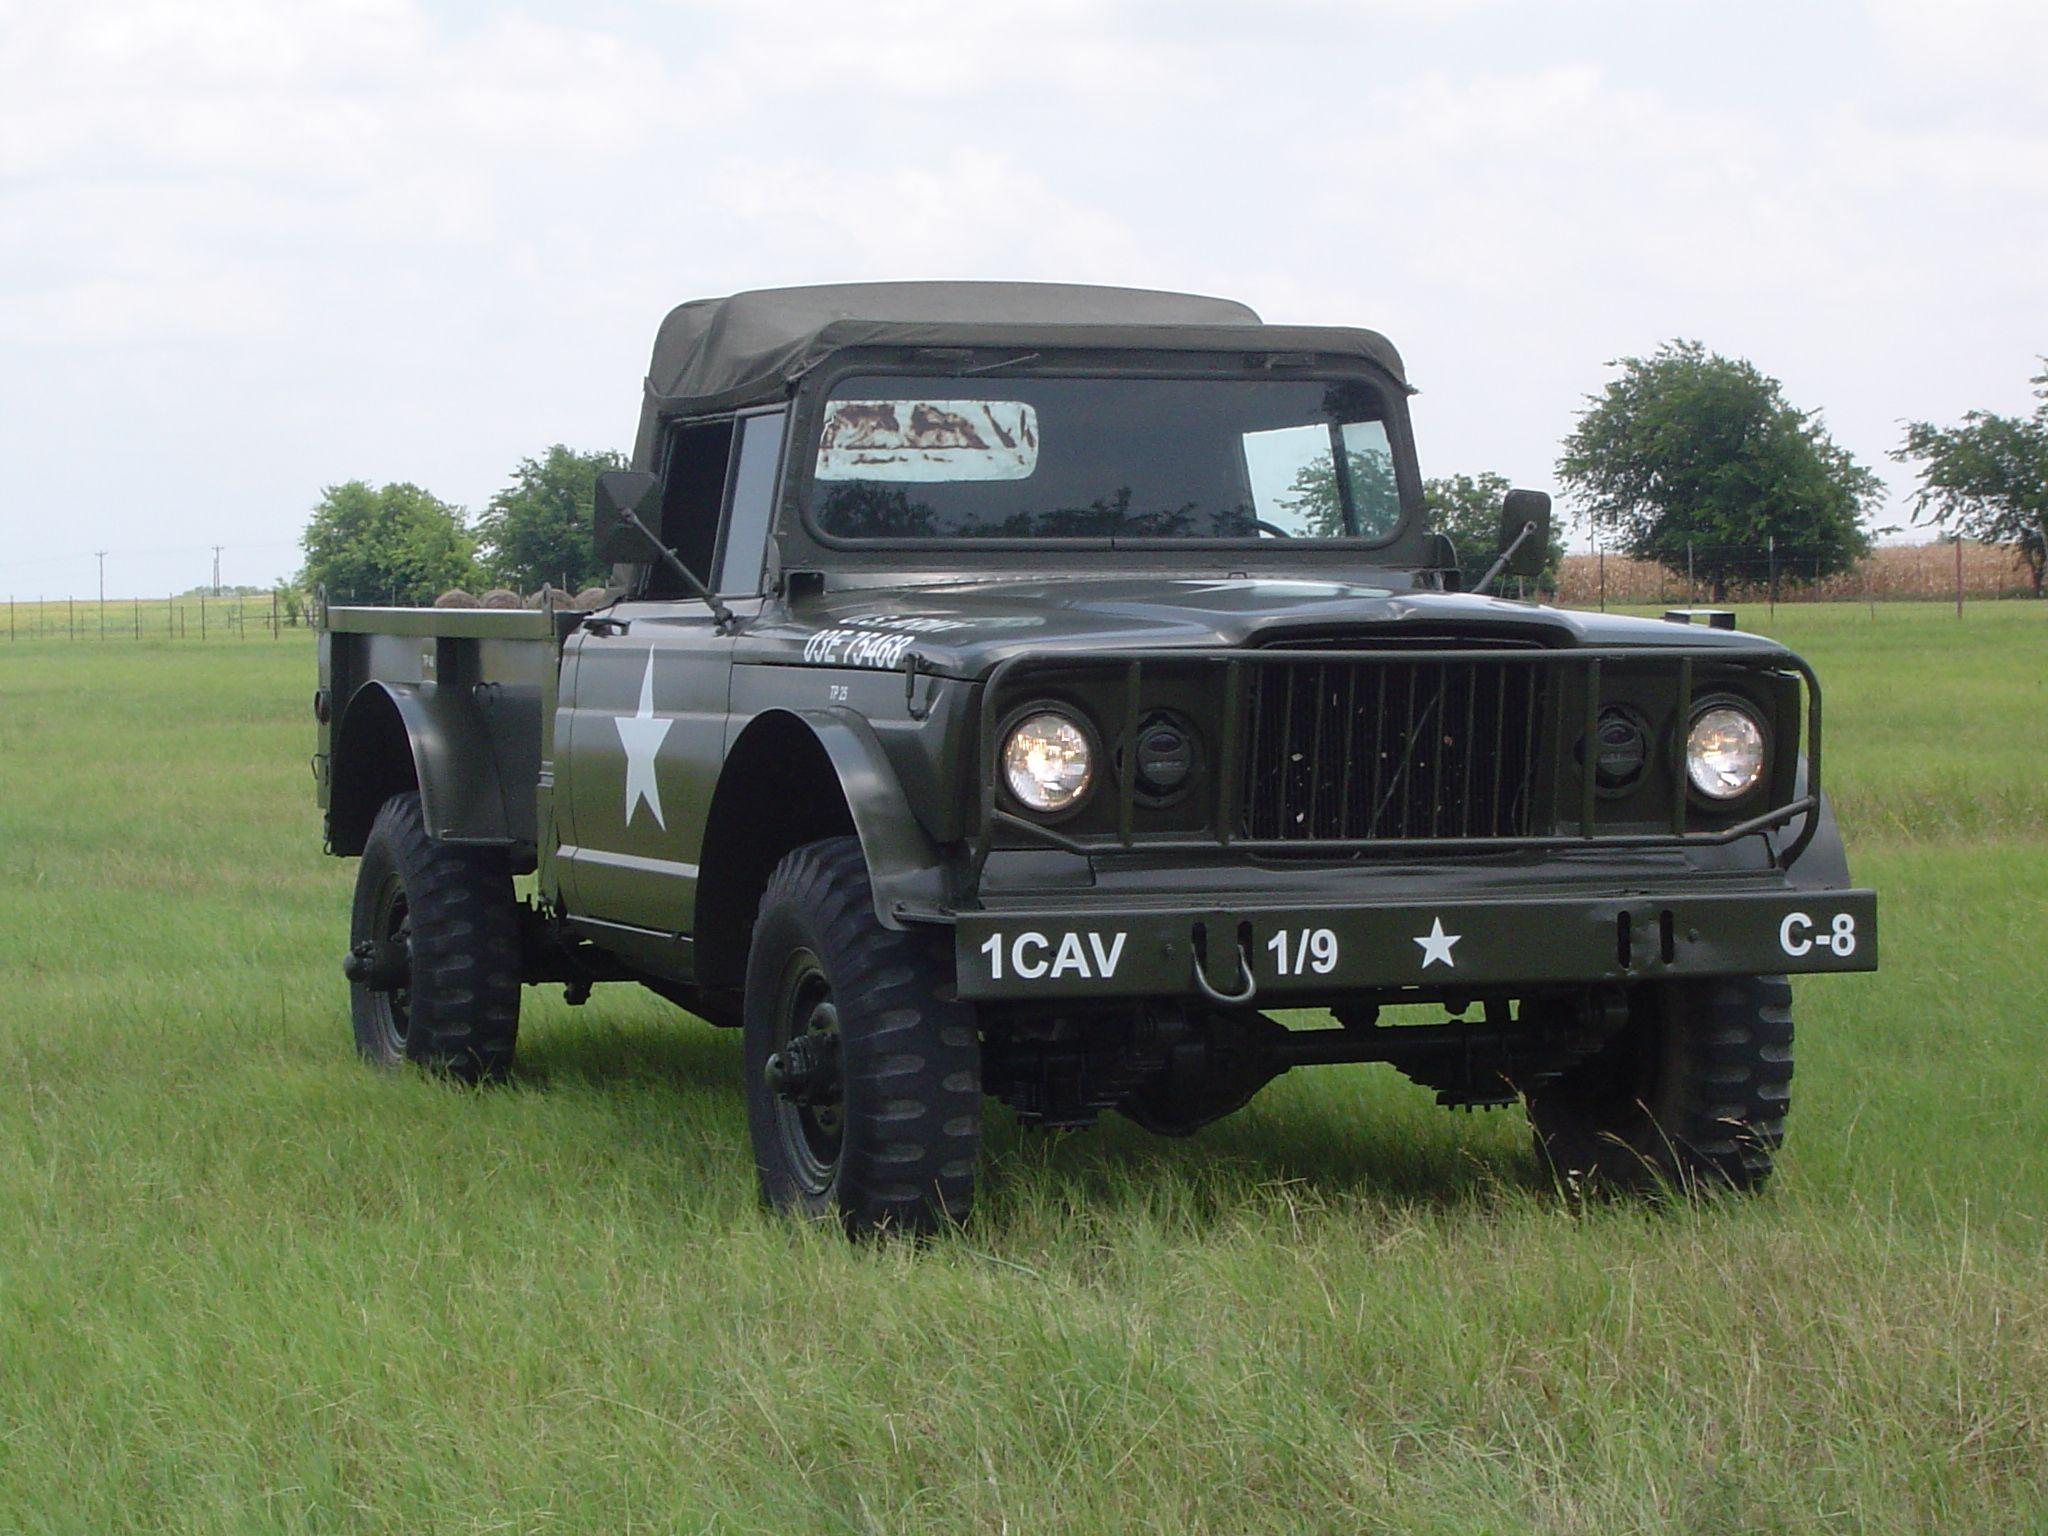 Old American 4x4 iron- M-715 (Jeep Gladiator) vs. IH Scout - MX-5 ...